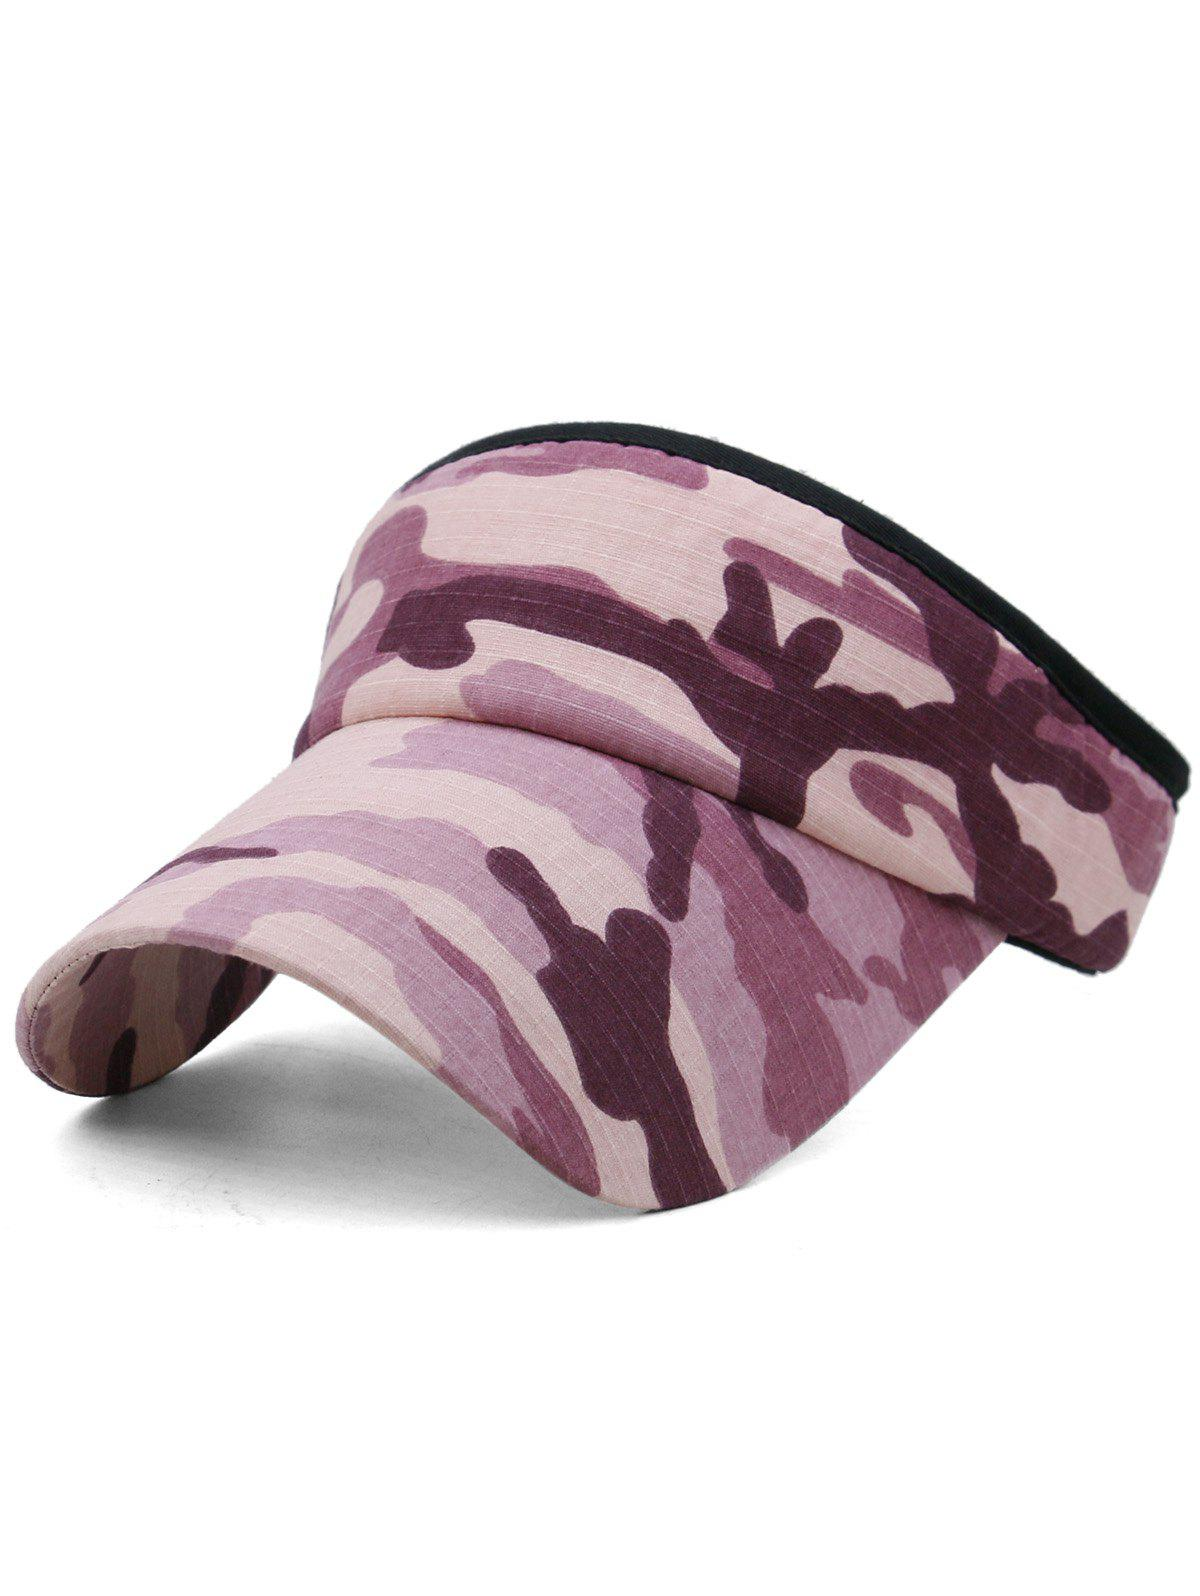 Trendy Outdoor Camo Printed Open Top Sun Hat